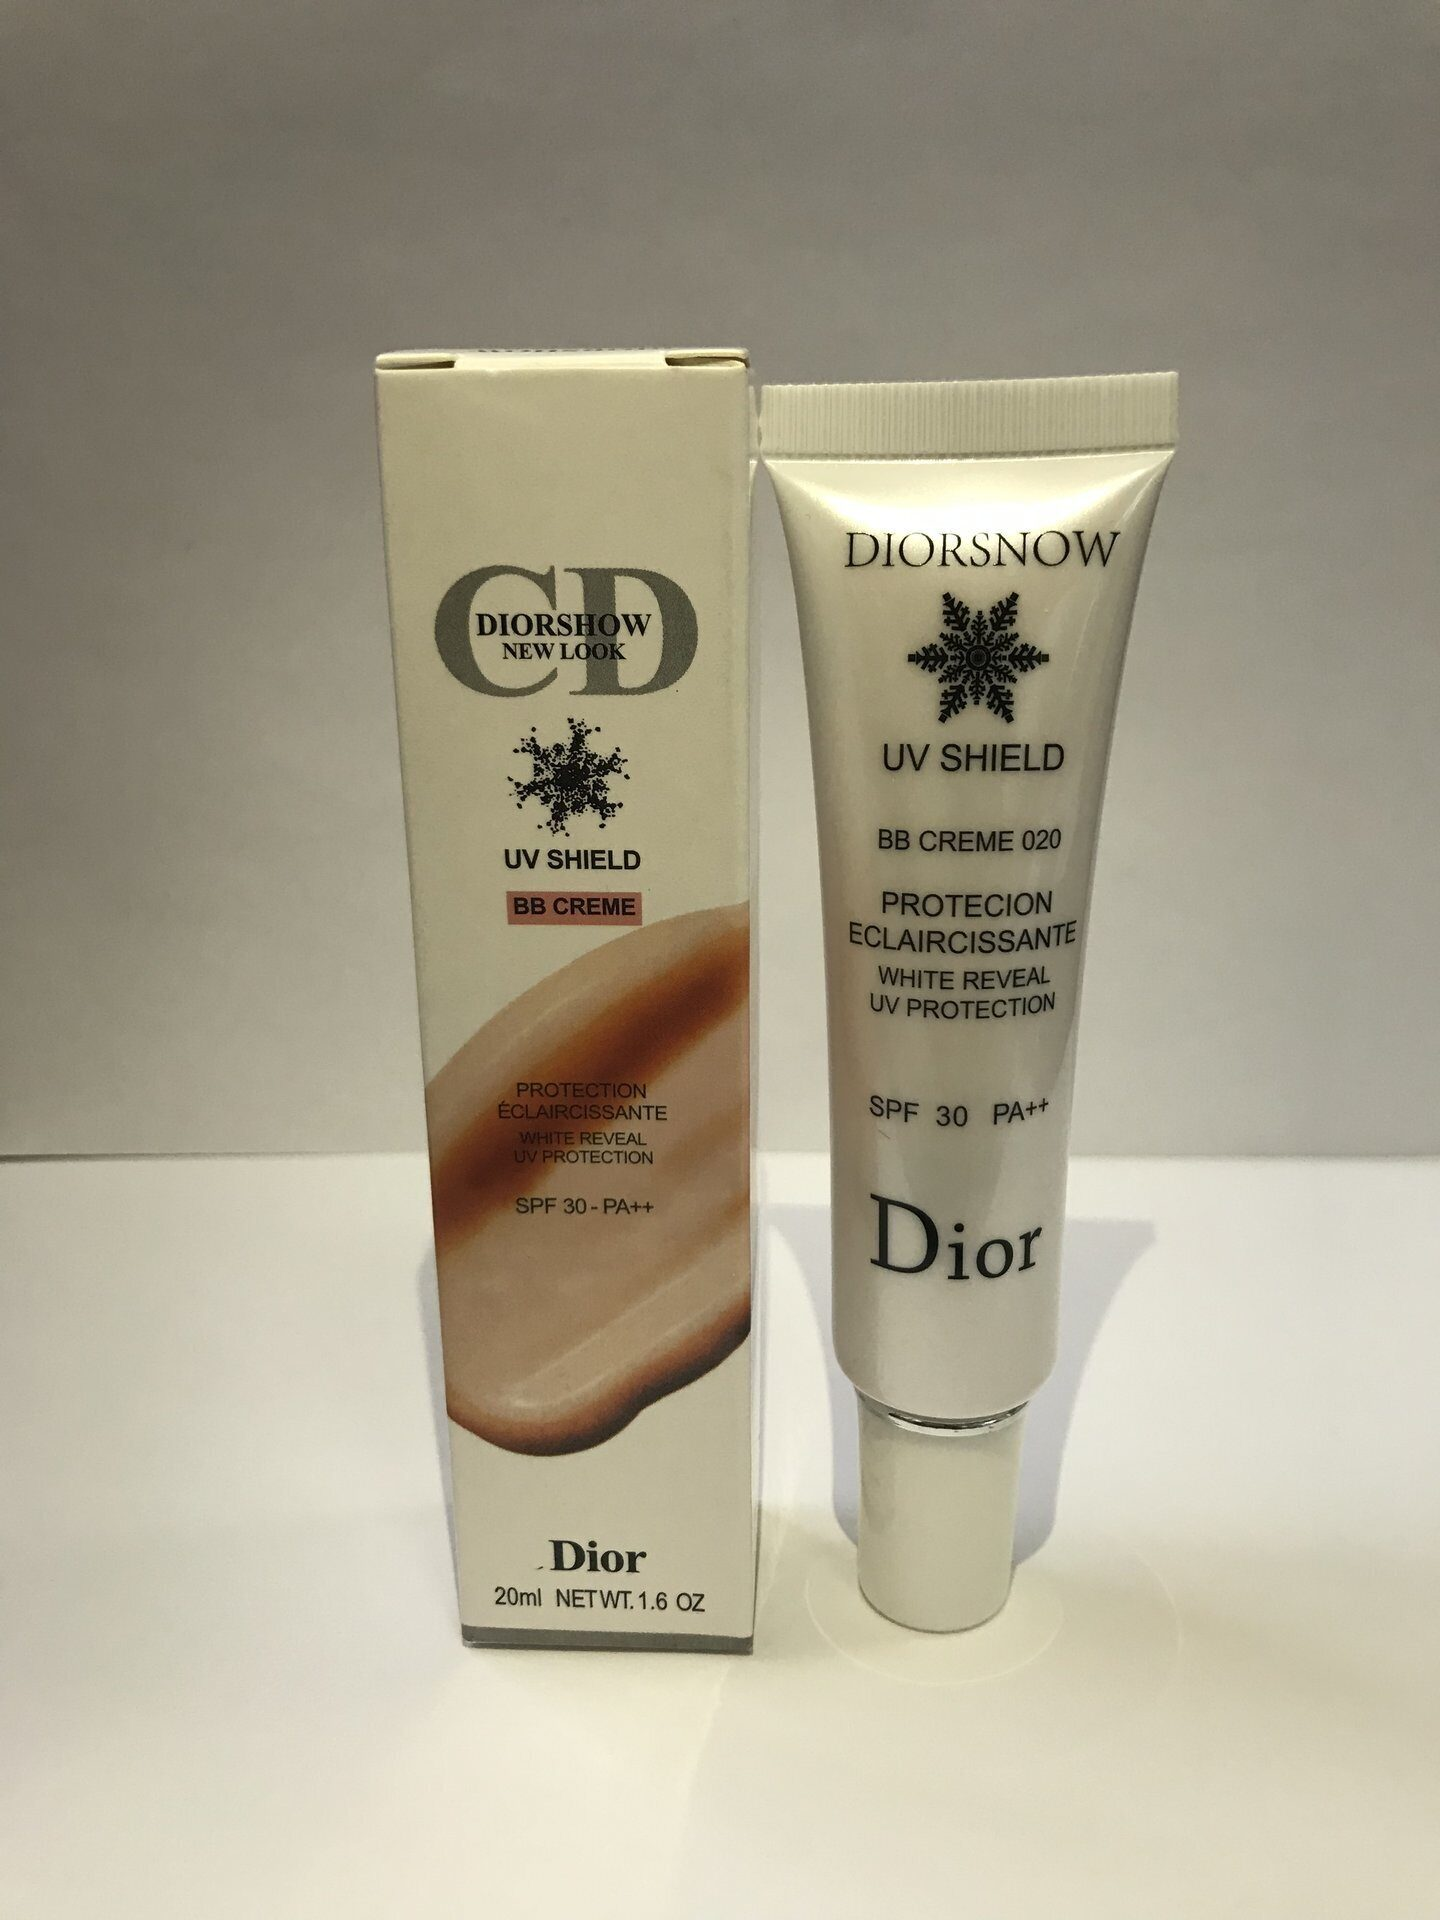 CD NEW LOOK UV SHIELD BB CREME №1